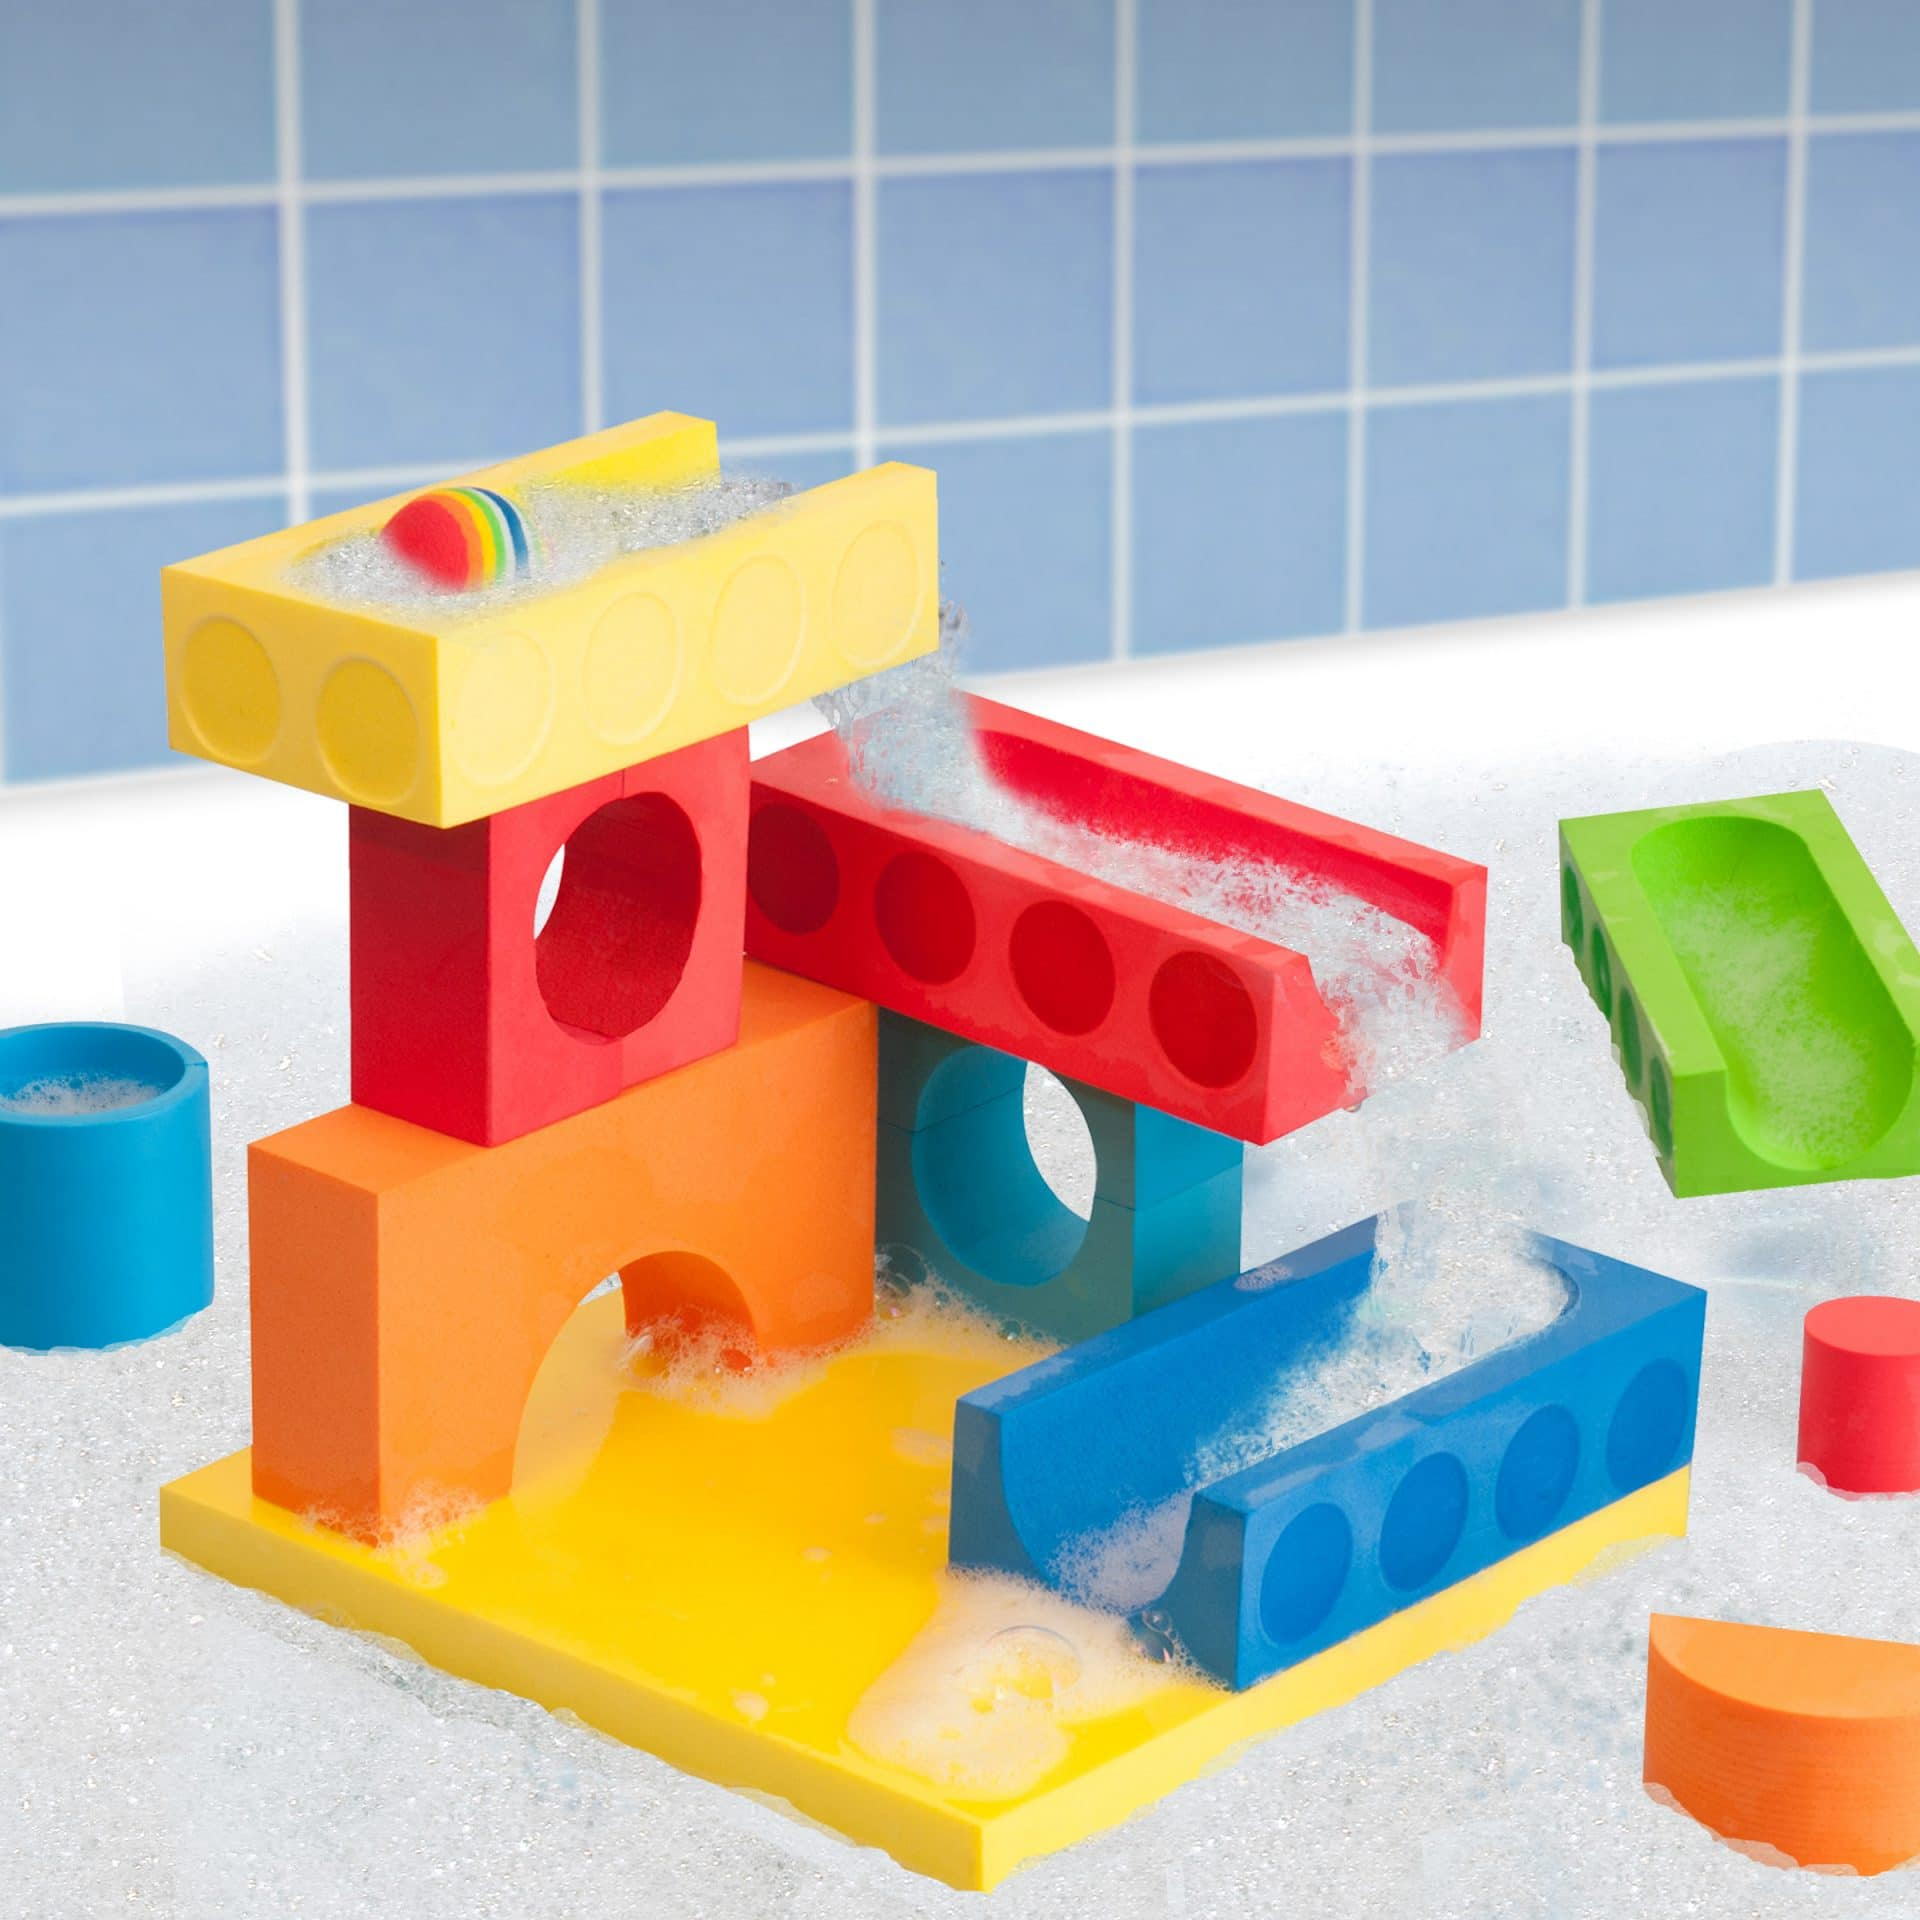 Foam blocks that stick together when wet